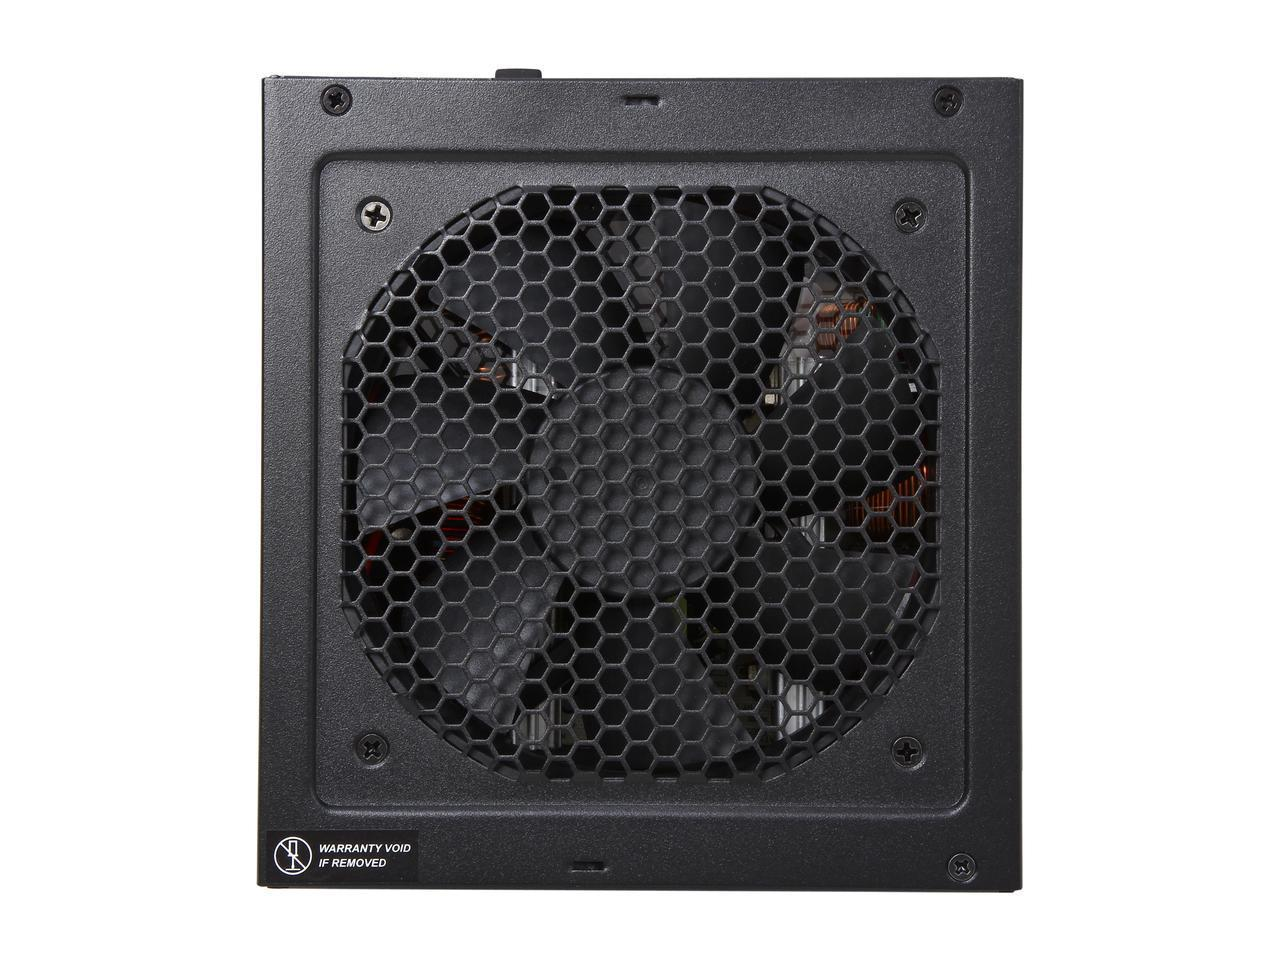 Nguồn Seasonic 520W M12II Bronze Evo Edition